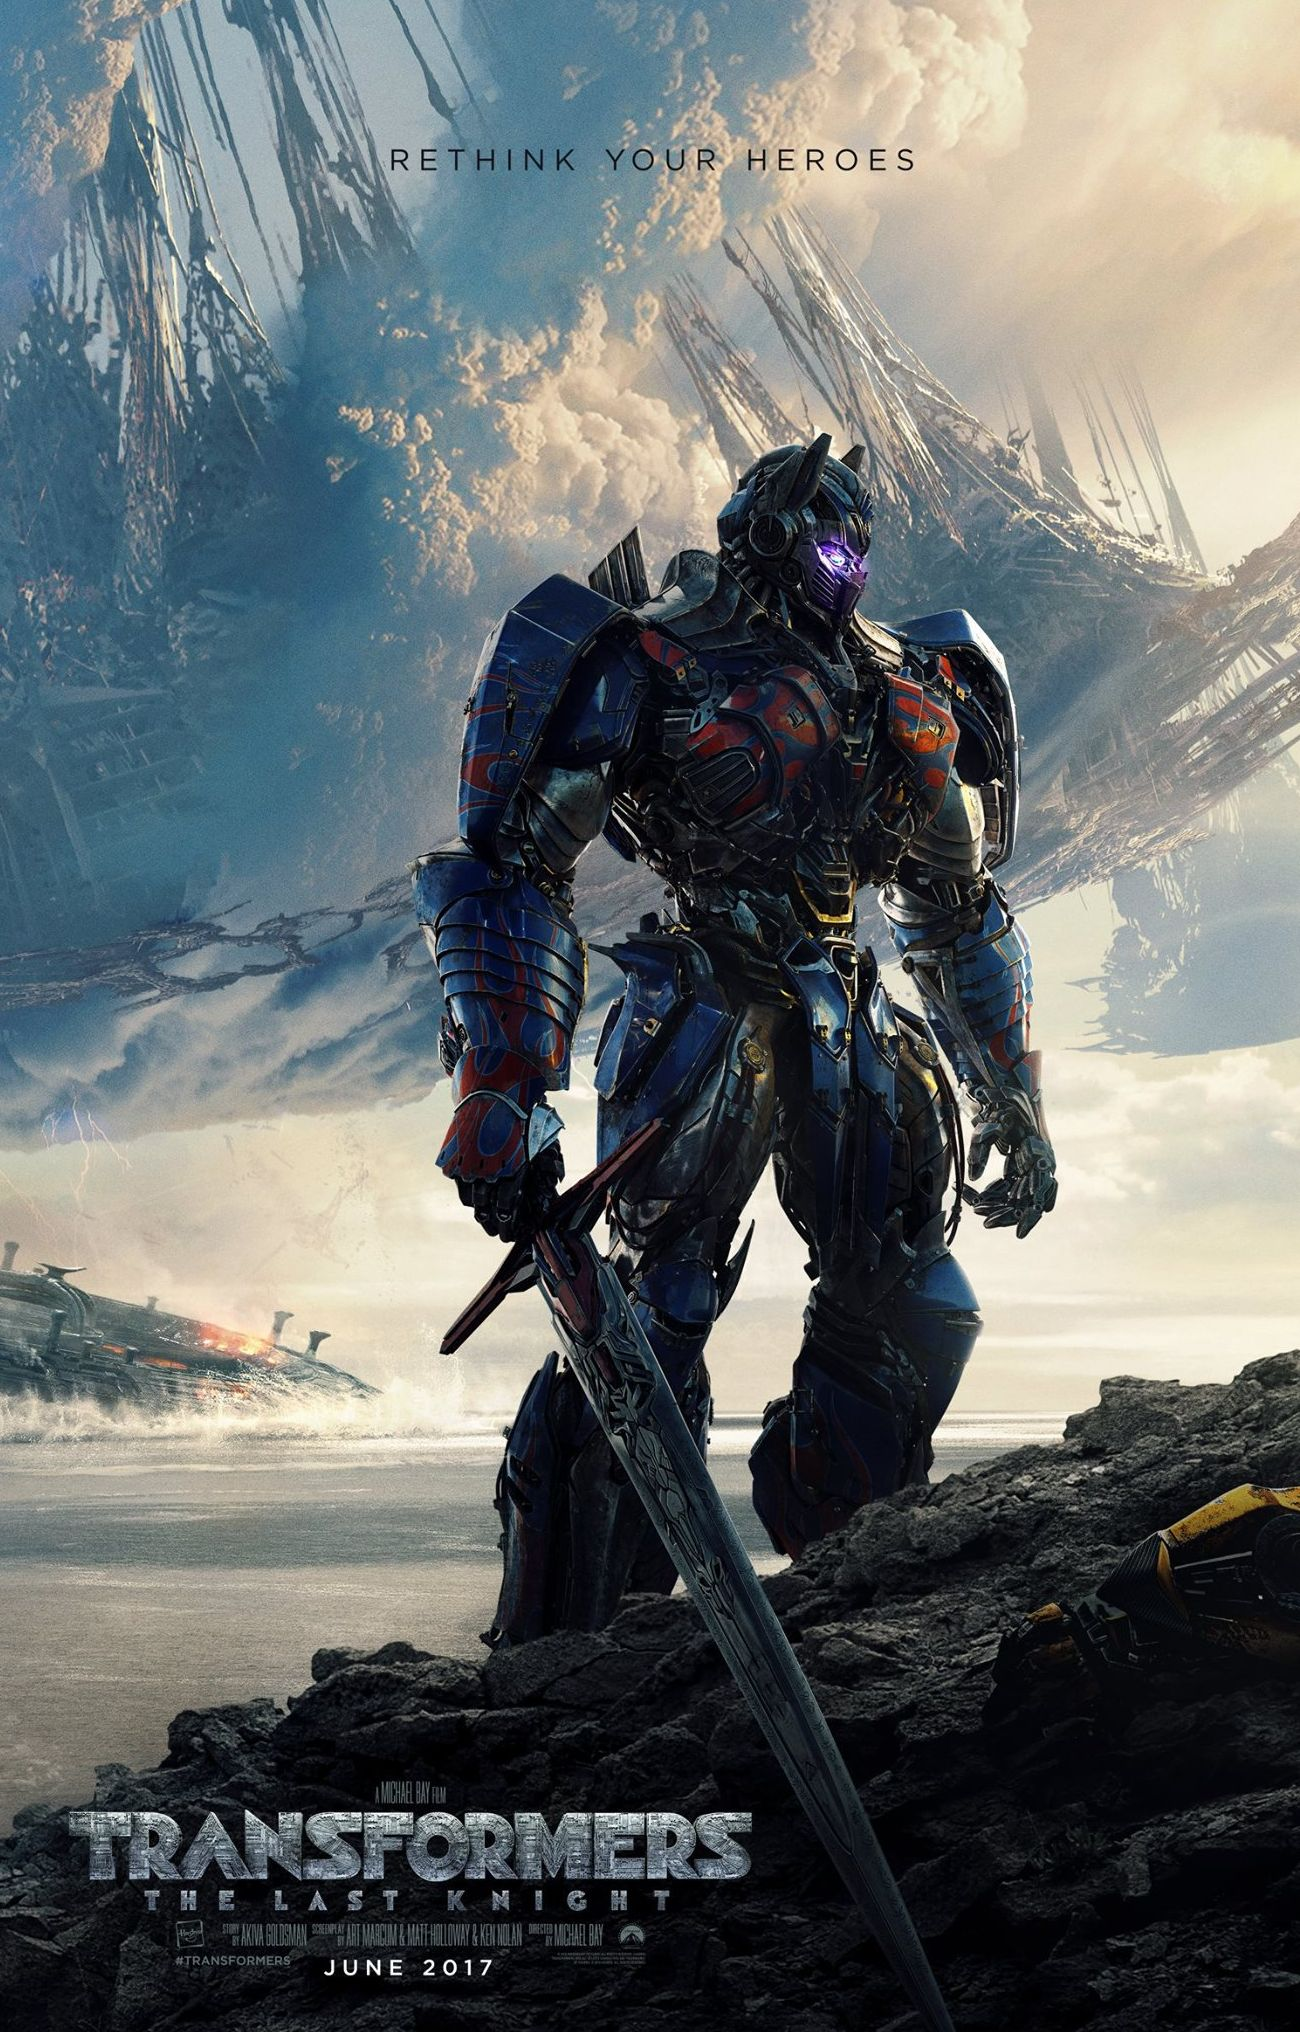 Optimus Prime stands over a fallen hero in the new poster fo